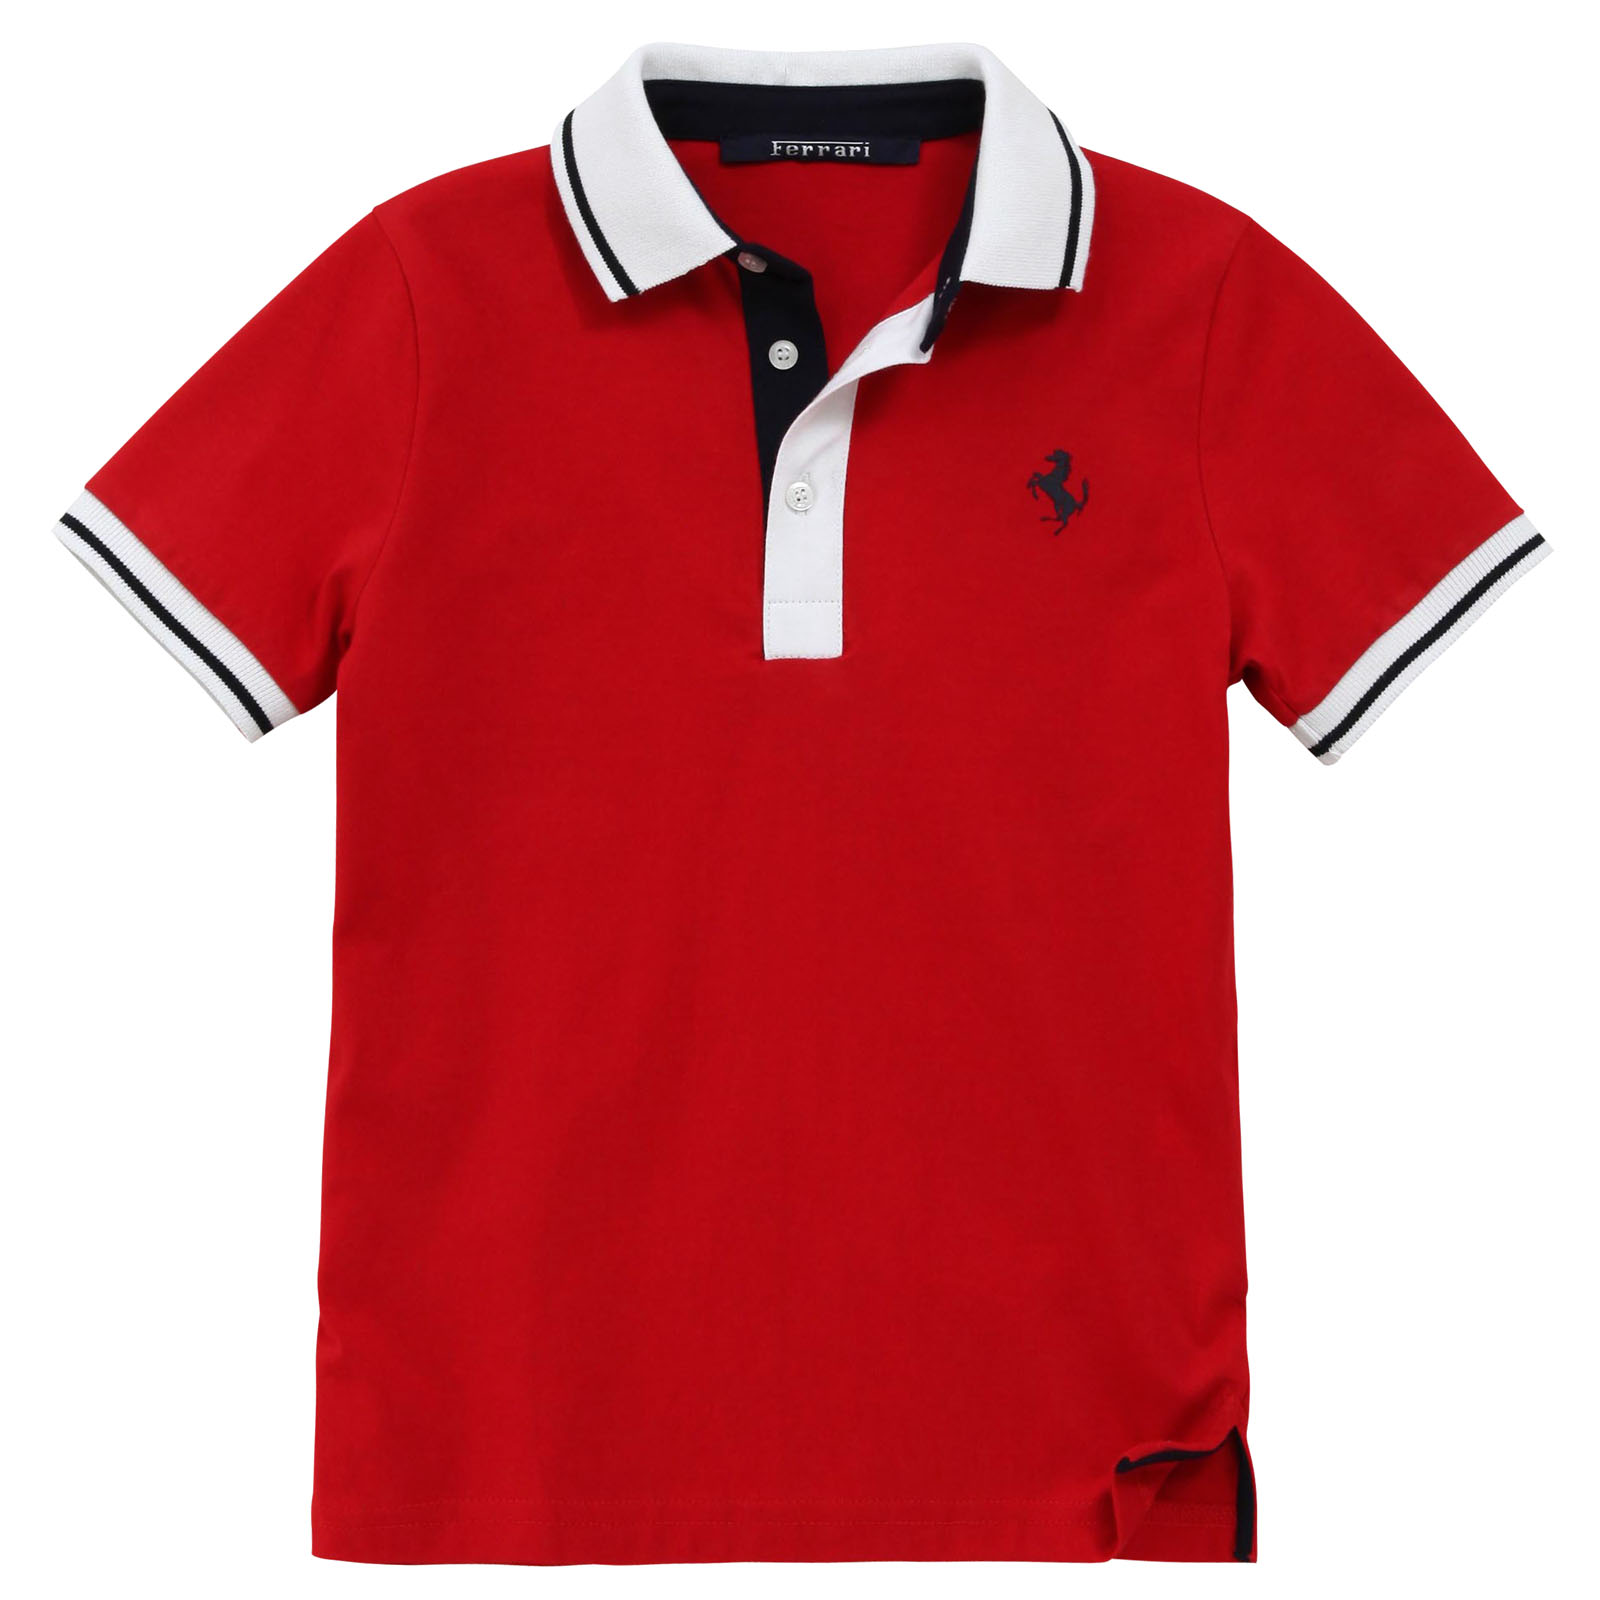 Polo t shirts with customization and embroidery tshirts for Polo shirts for printing